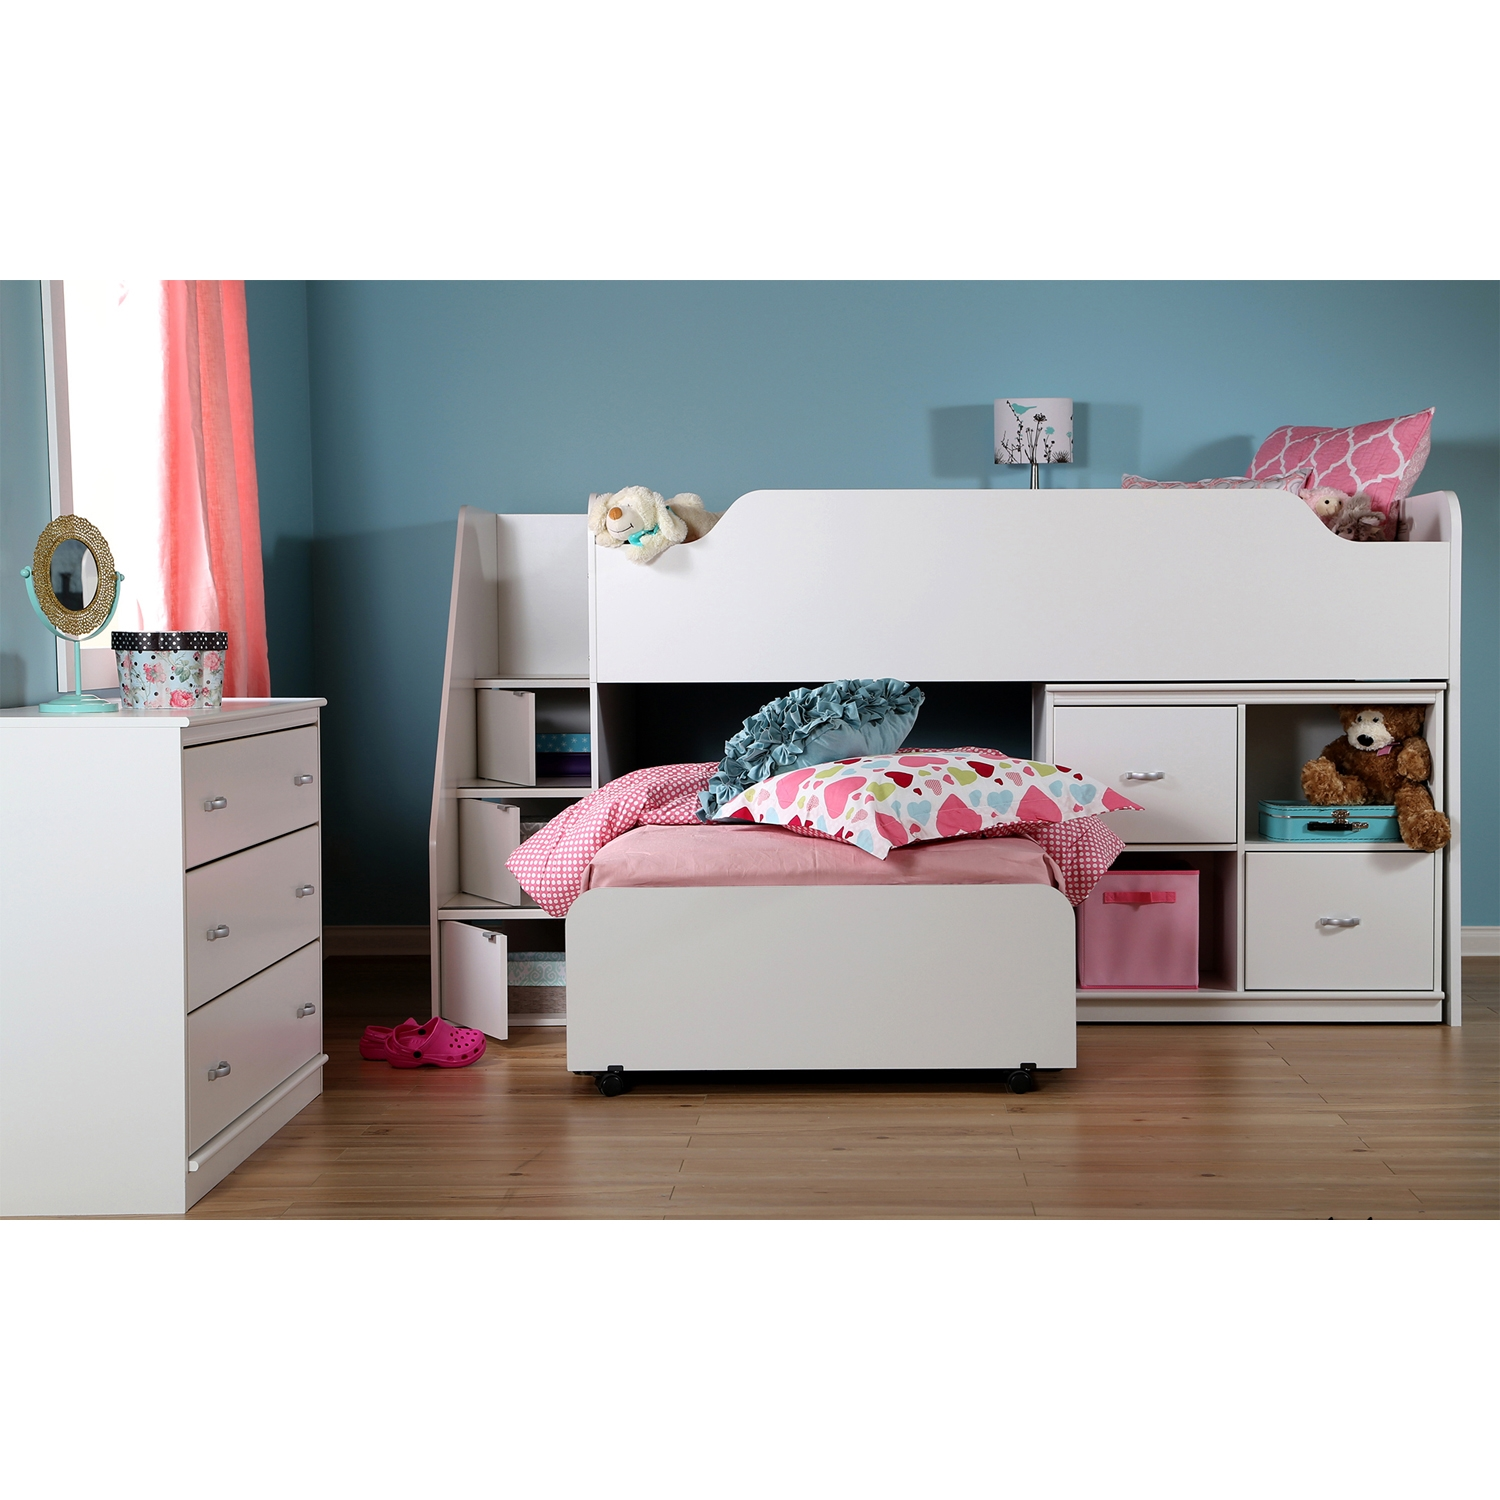 Mobby Twin Loft Bed with Stairs - Pure White - SS-3880087